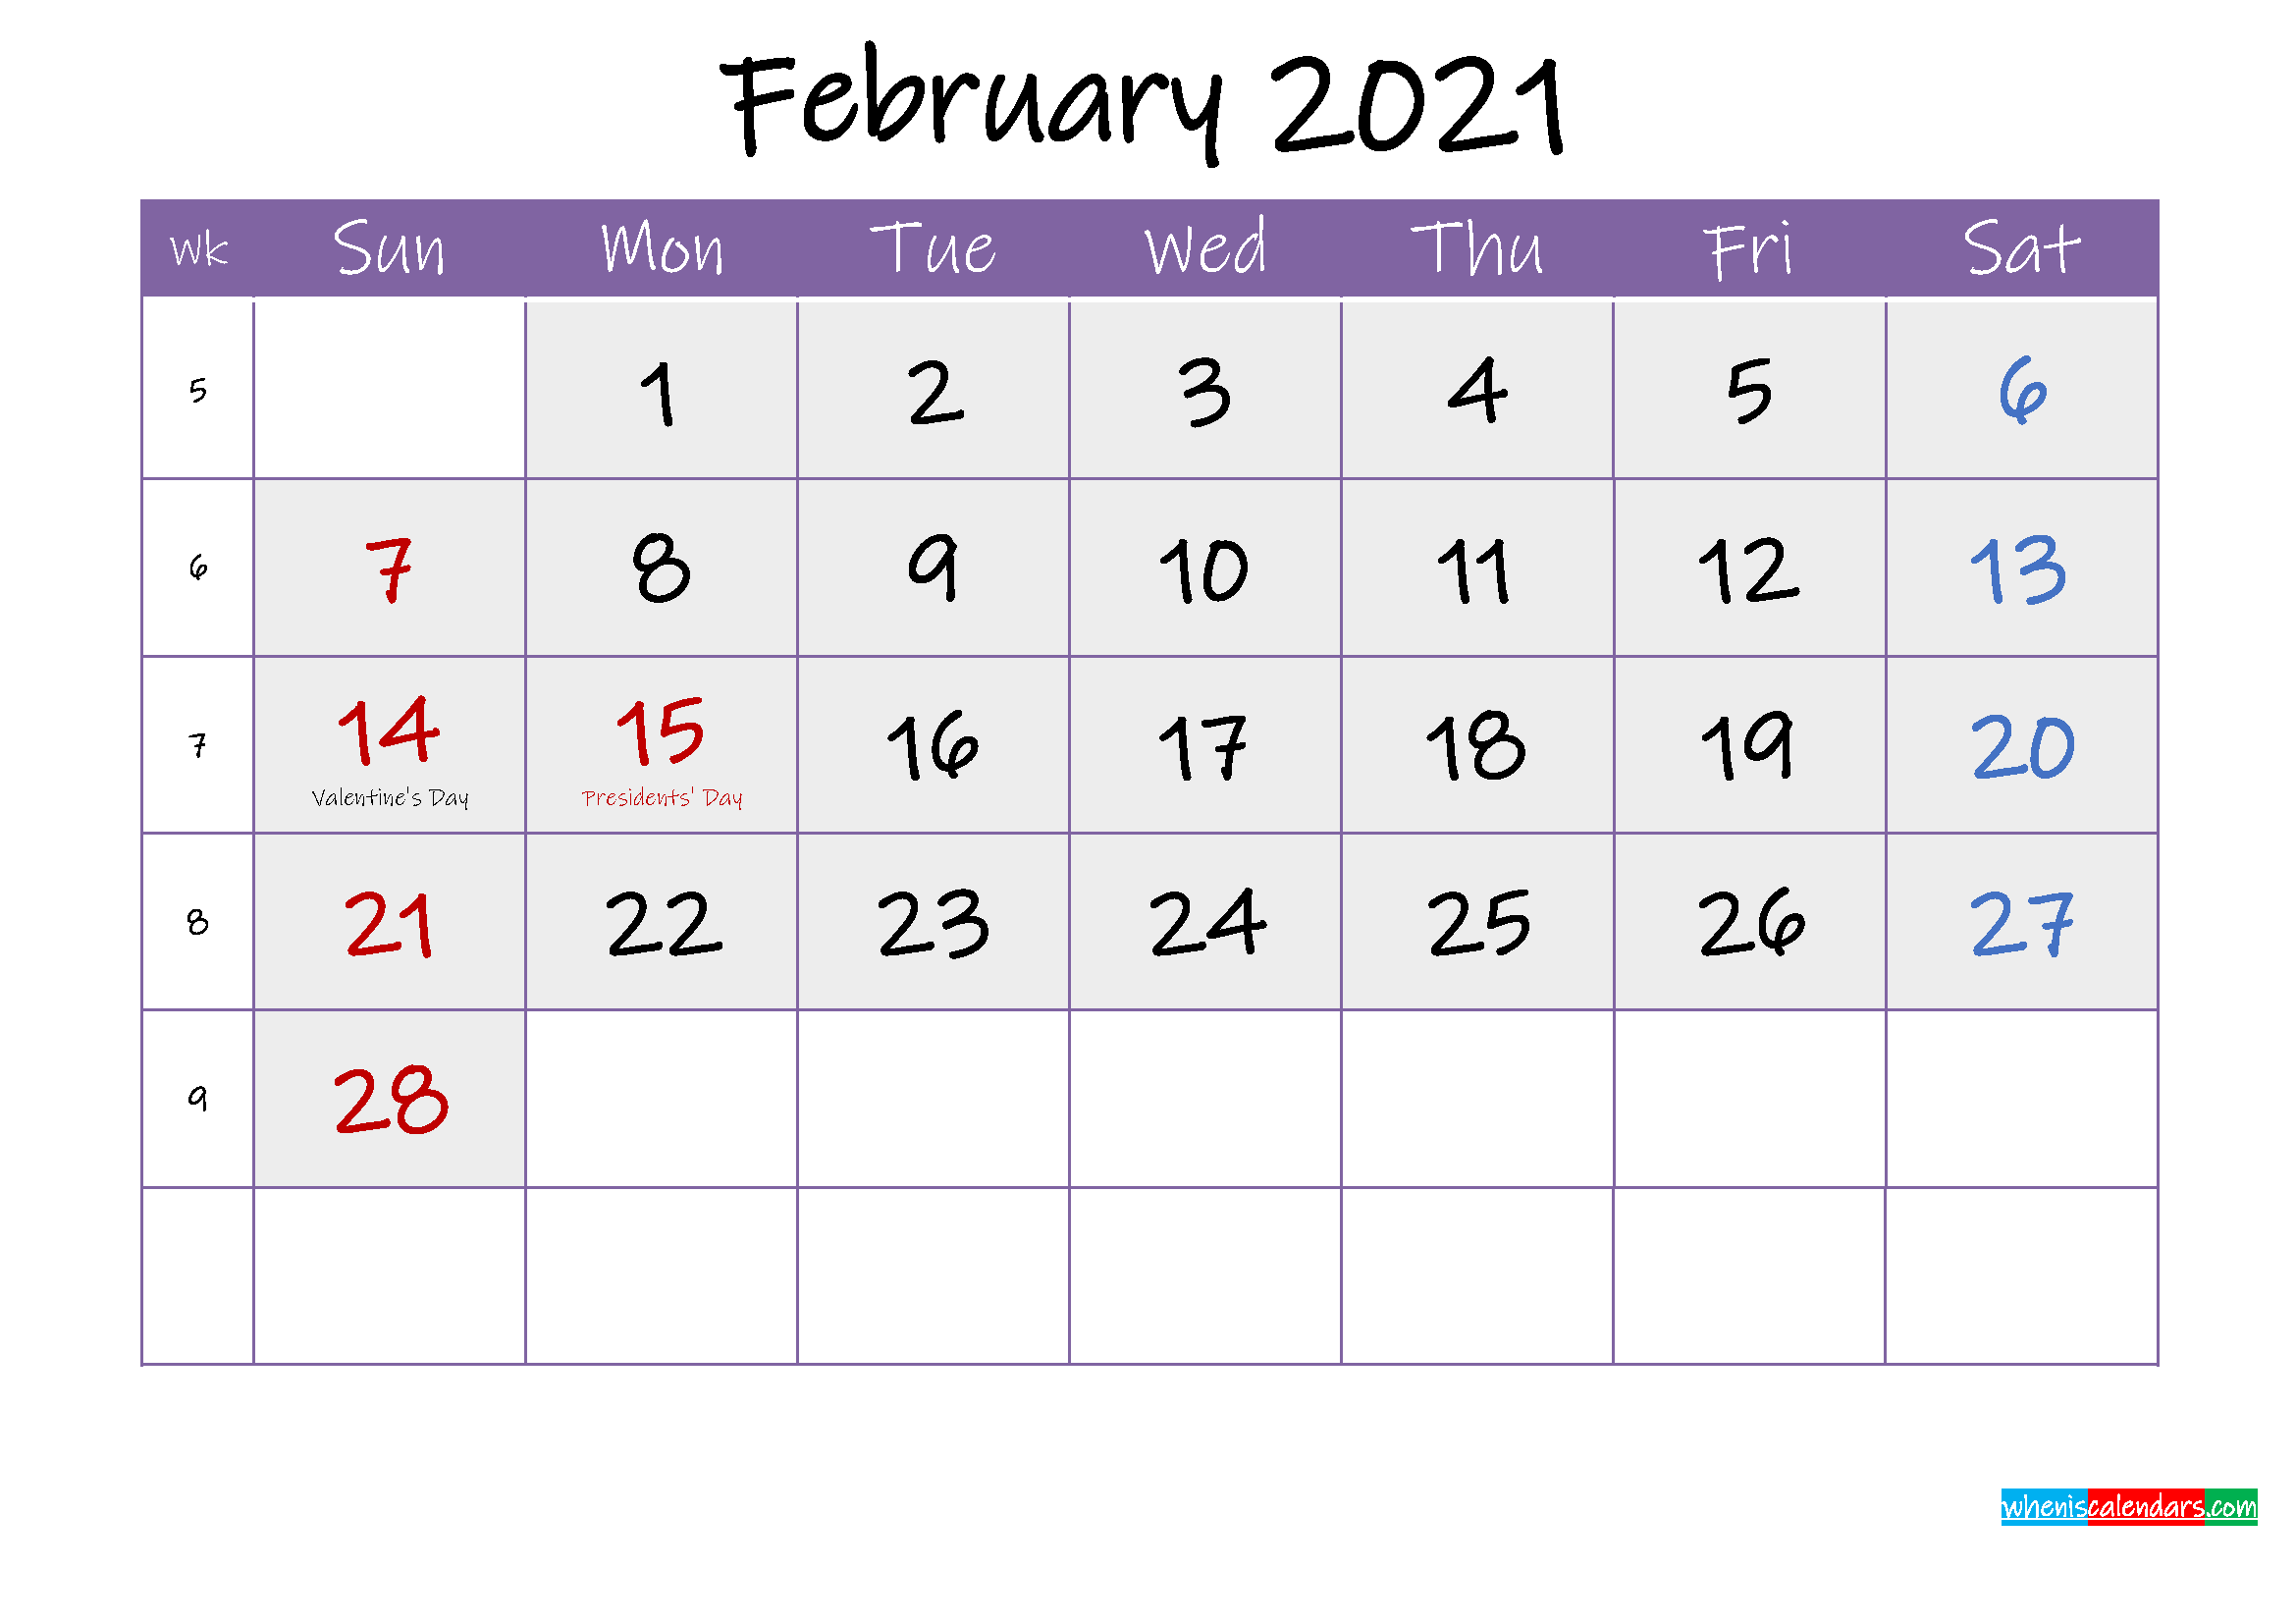 Free February 2021 Printable Calendar with Holidays ...